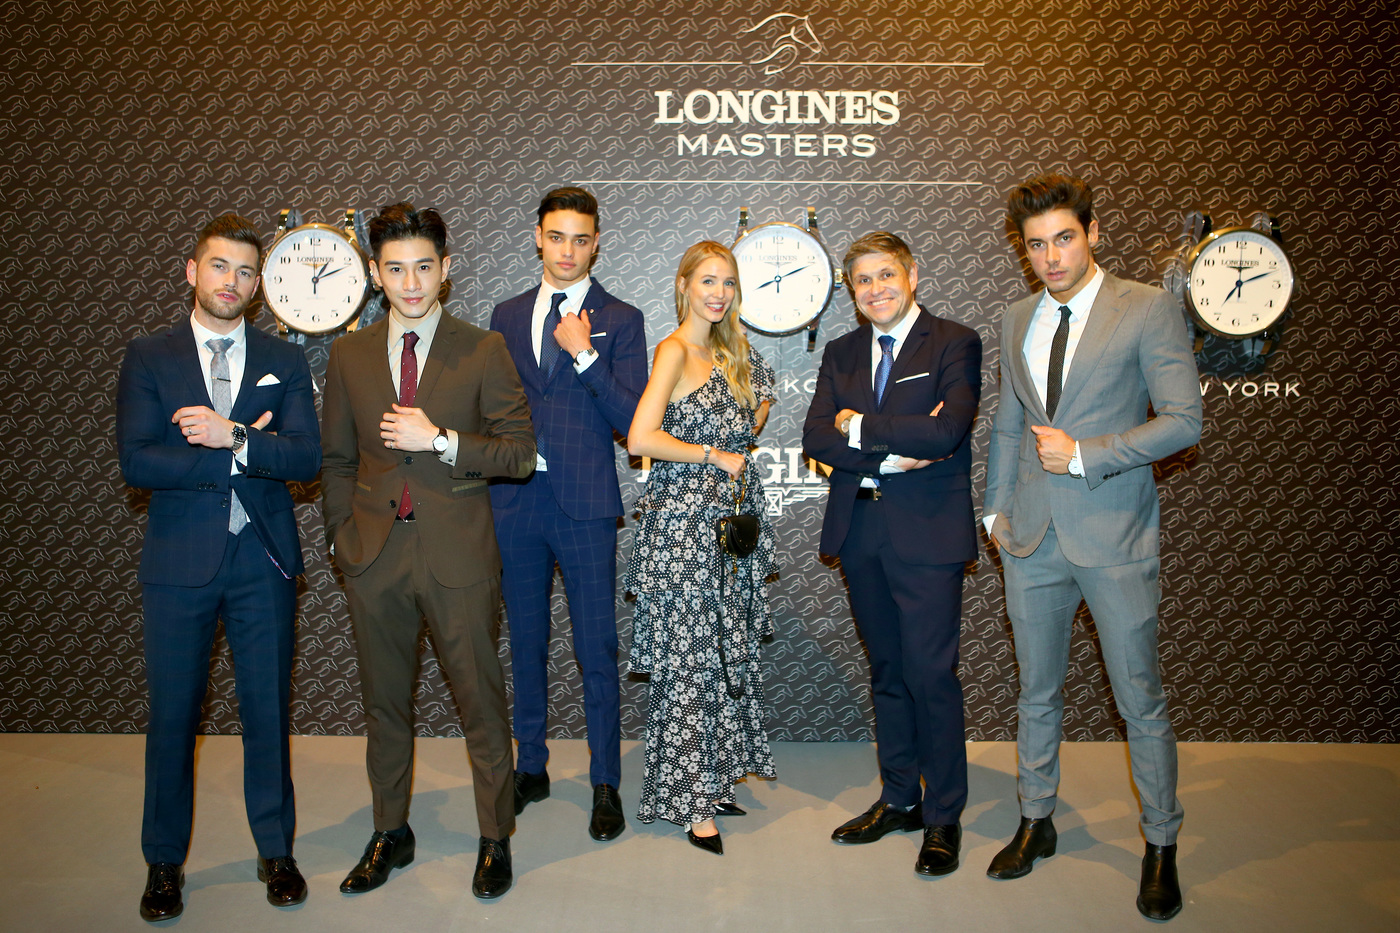 Longines Show Jumping Event: The Longines Masters of Hong Kong: Patrice Delaveau on Aquila HDC takes top class Longines Grand Prix win 13